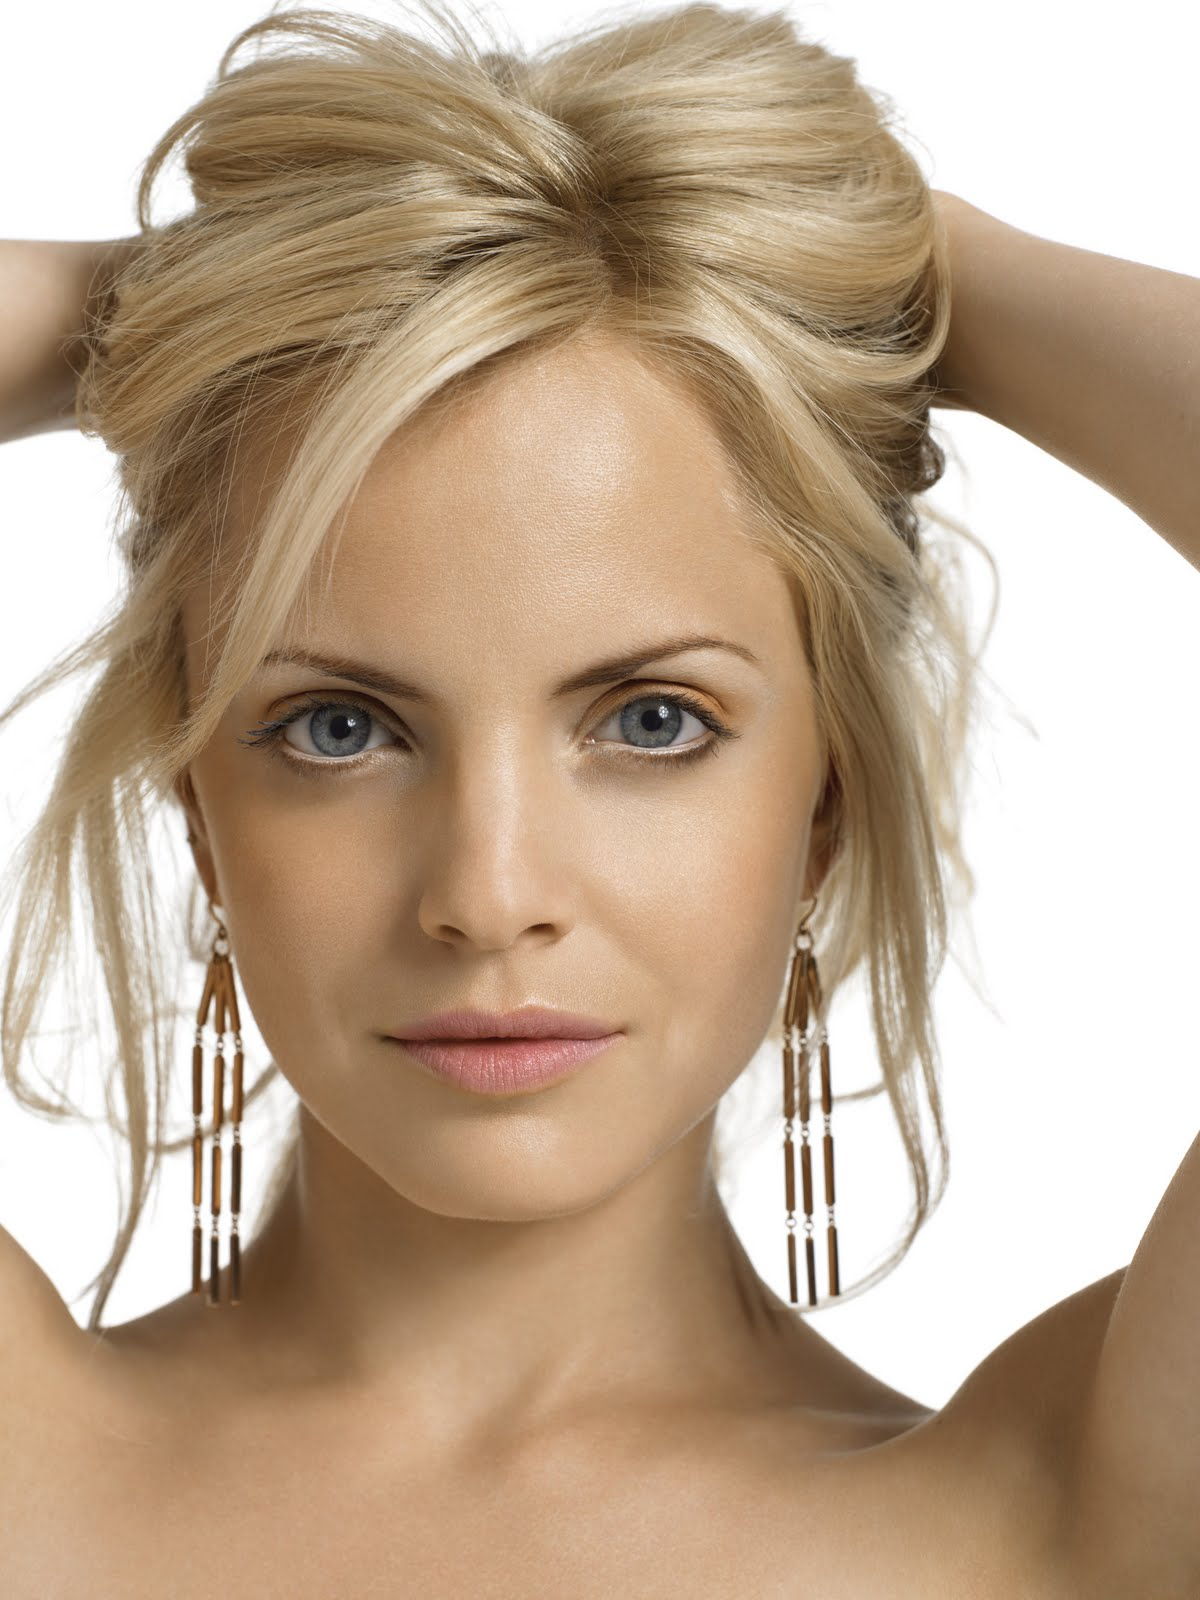 Styles For Celebrities With Blond Hair